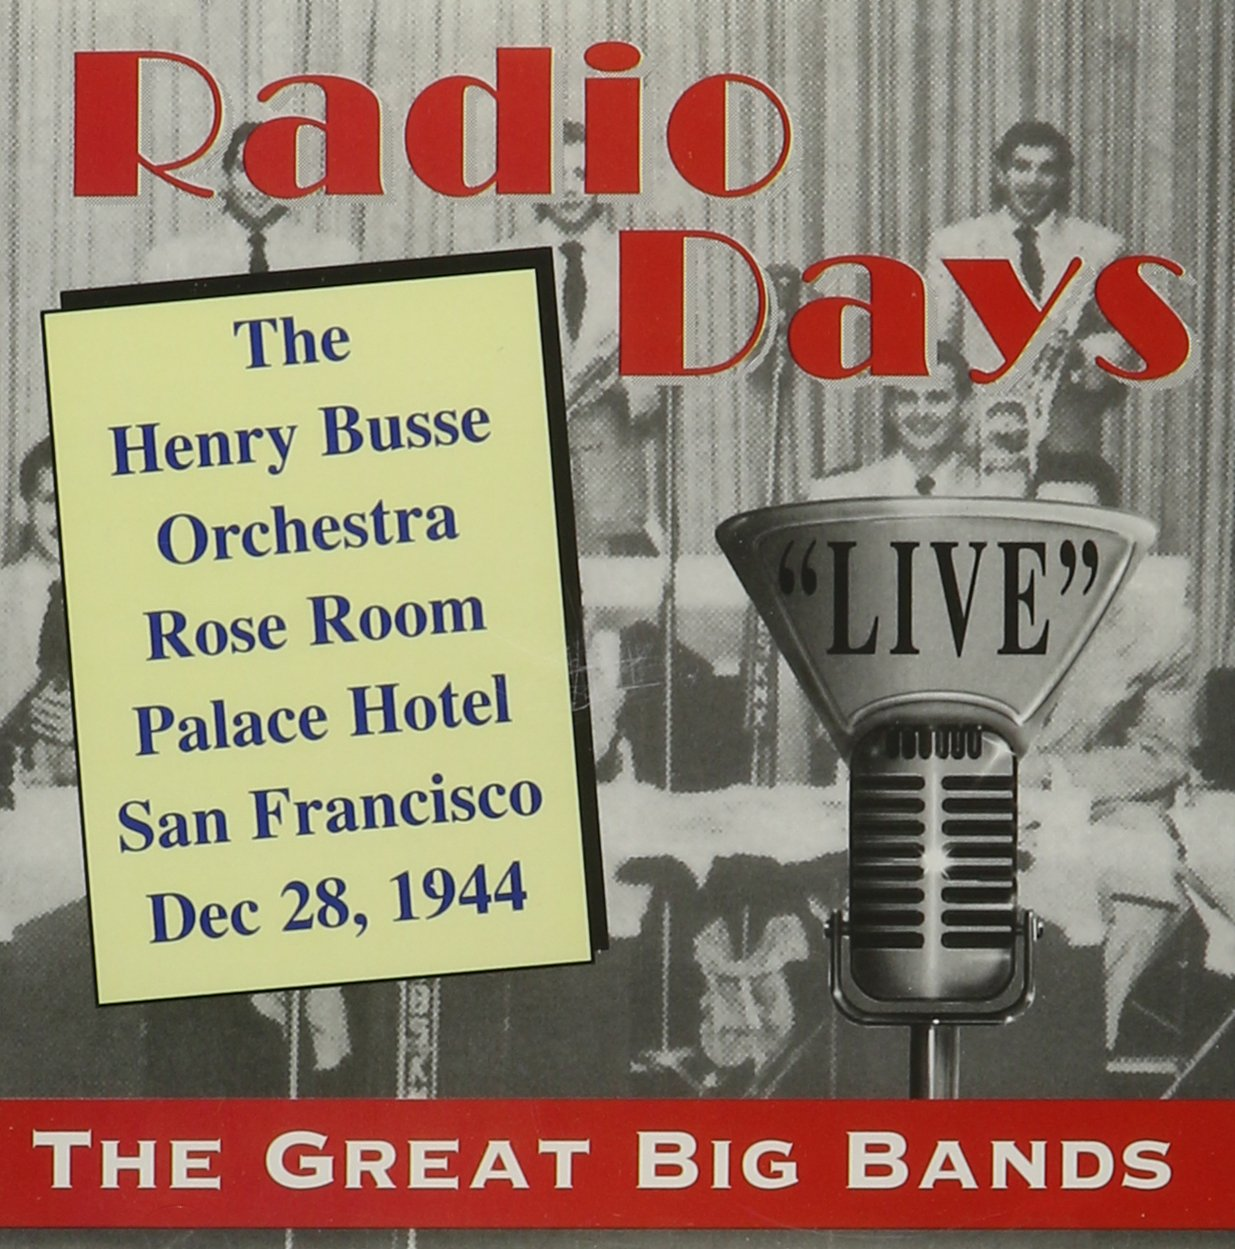 Radio Days ''Live'' Rose Room Palace Hotel San Francisco Dec 28, 1944 by Canby Records